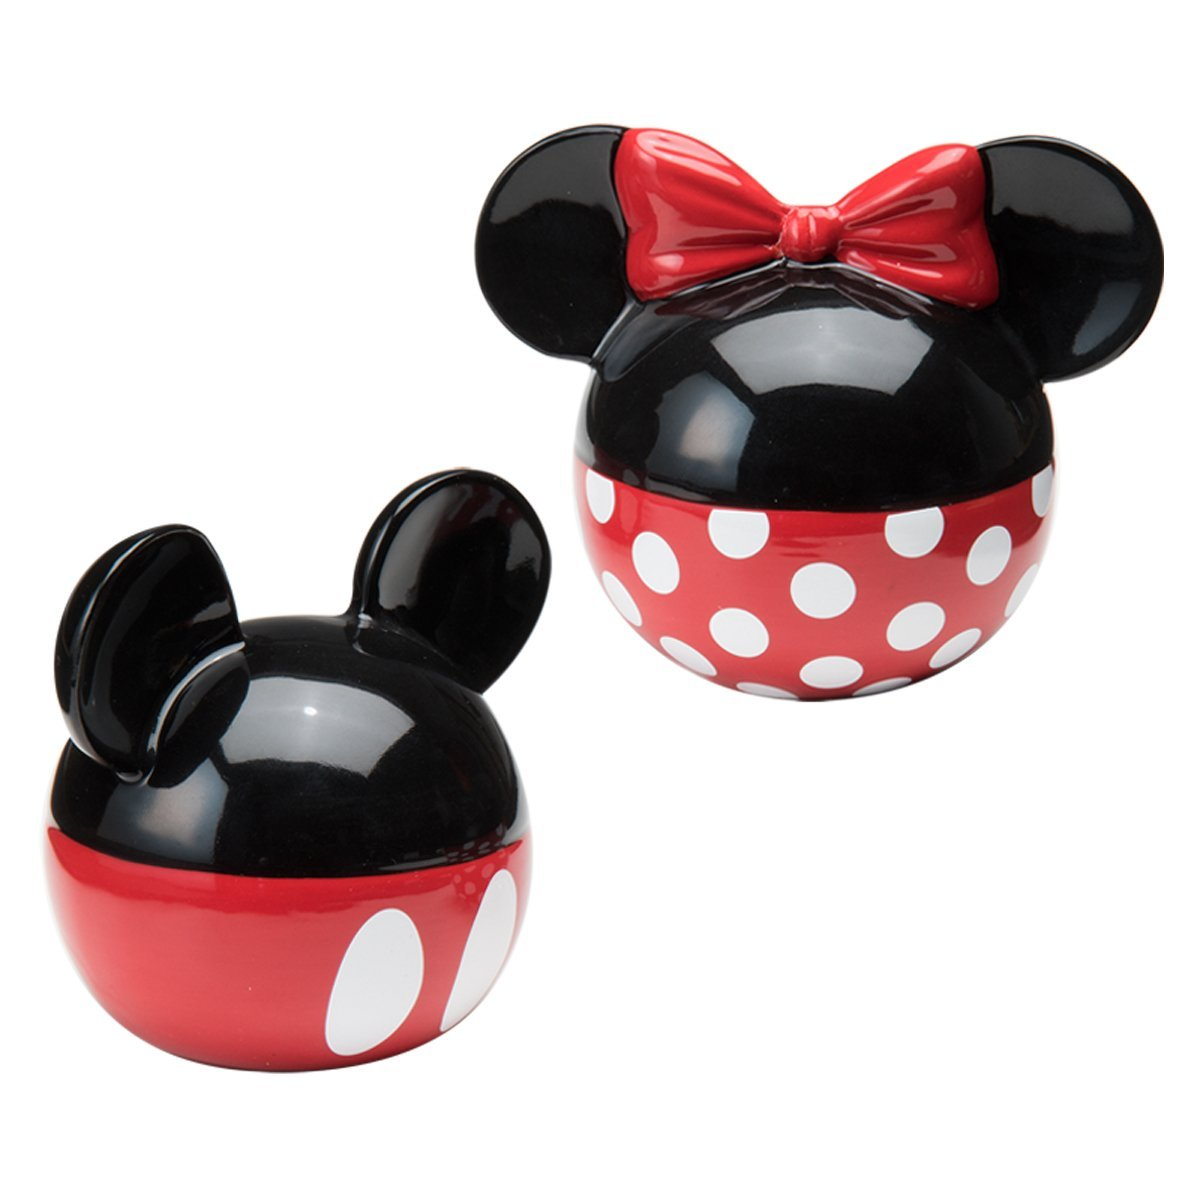 minnie mouse kitchen accessories disney accessories for the kitchen 7520